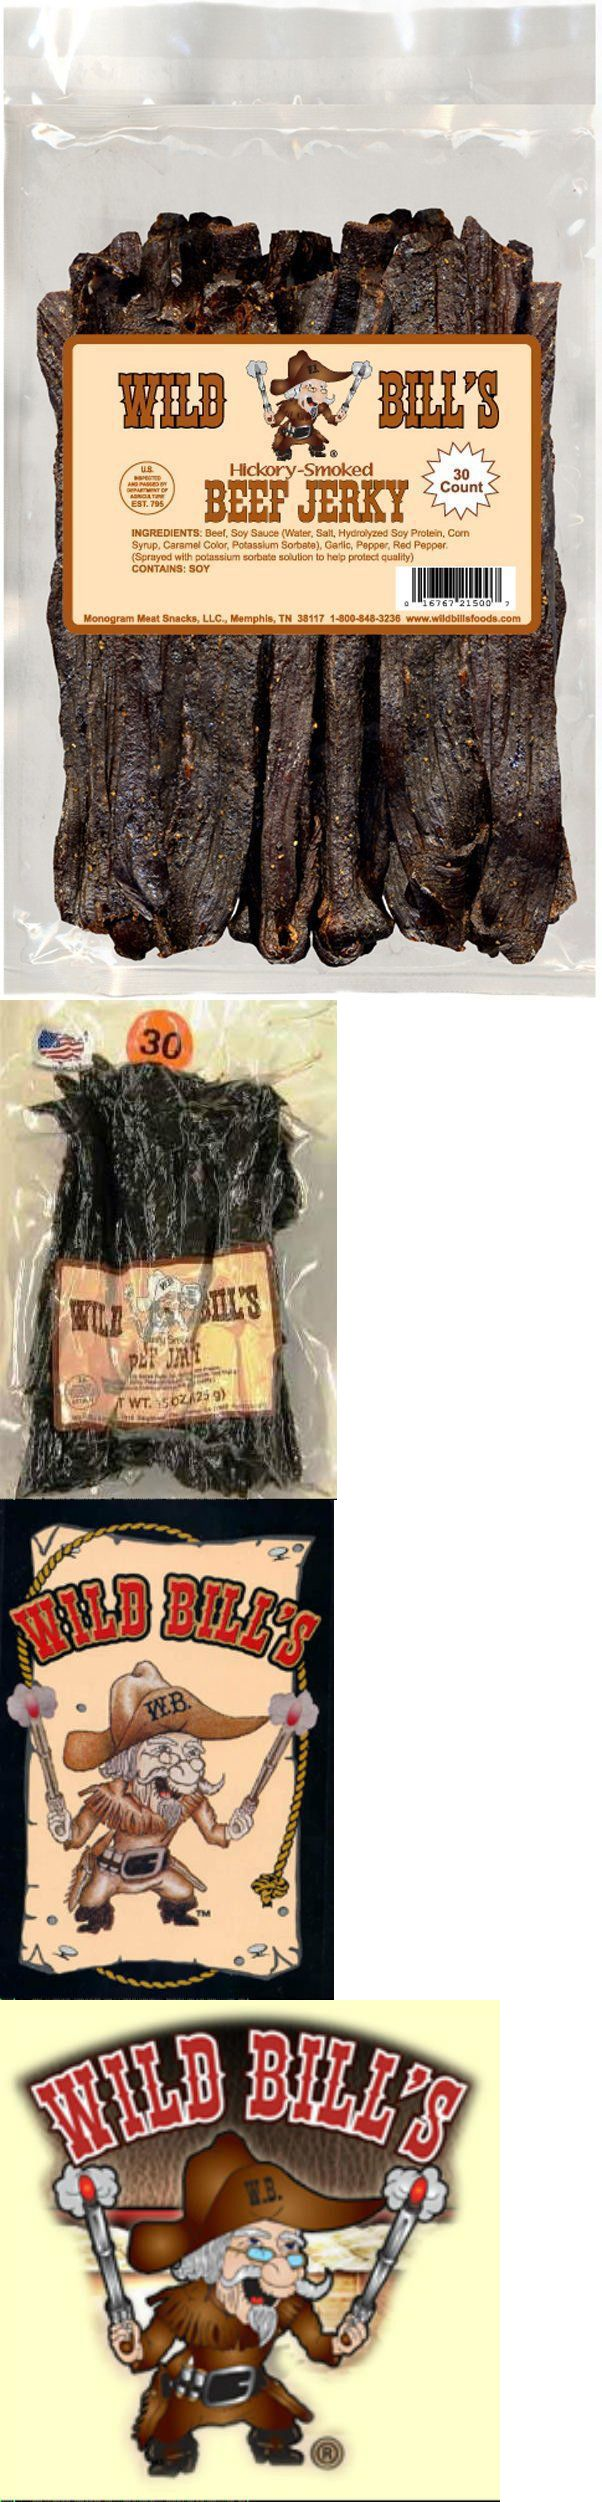 Other Candy Gum and Chocolate 14307: Wild Bill Beef Jerky Hickory Smoked 15Ounce Bag -> BUY IT NOW ONLY: $32 on eBay!